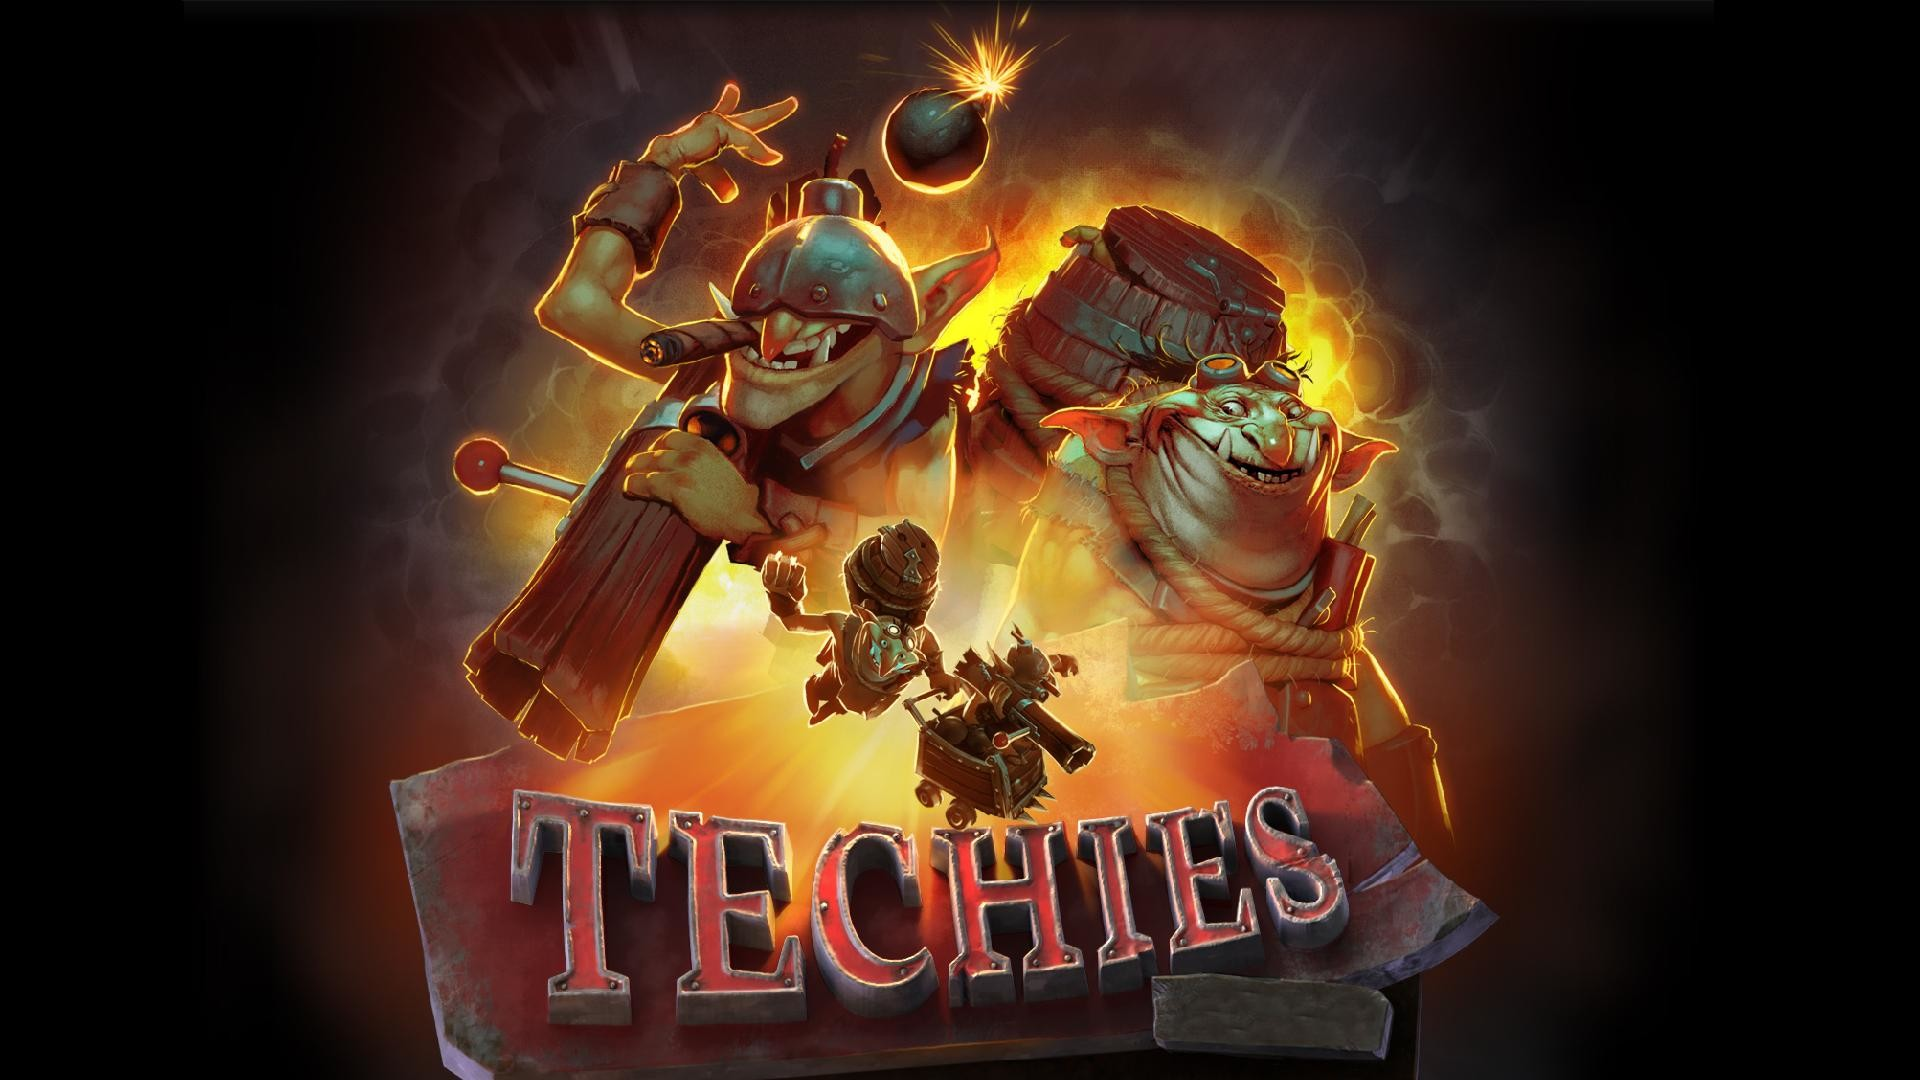 1920x1080 Best Of Techies Wallpaper Made Out Of the Blogpost[ ]